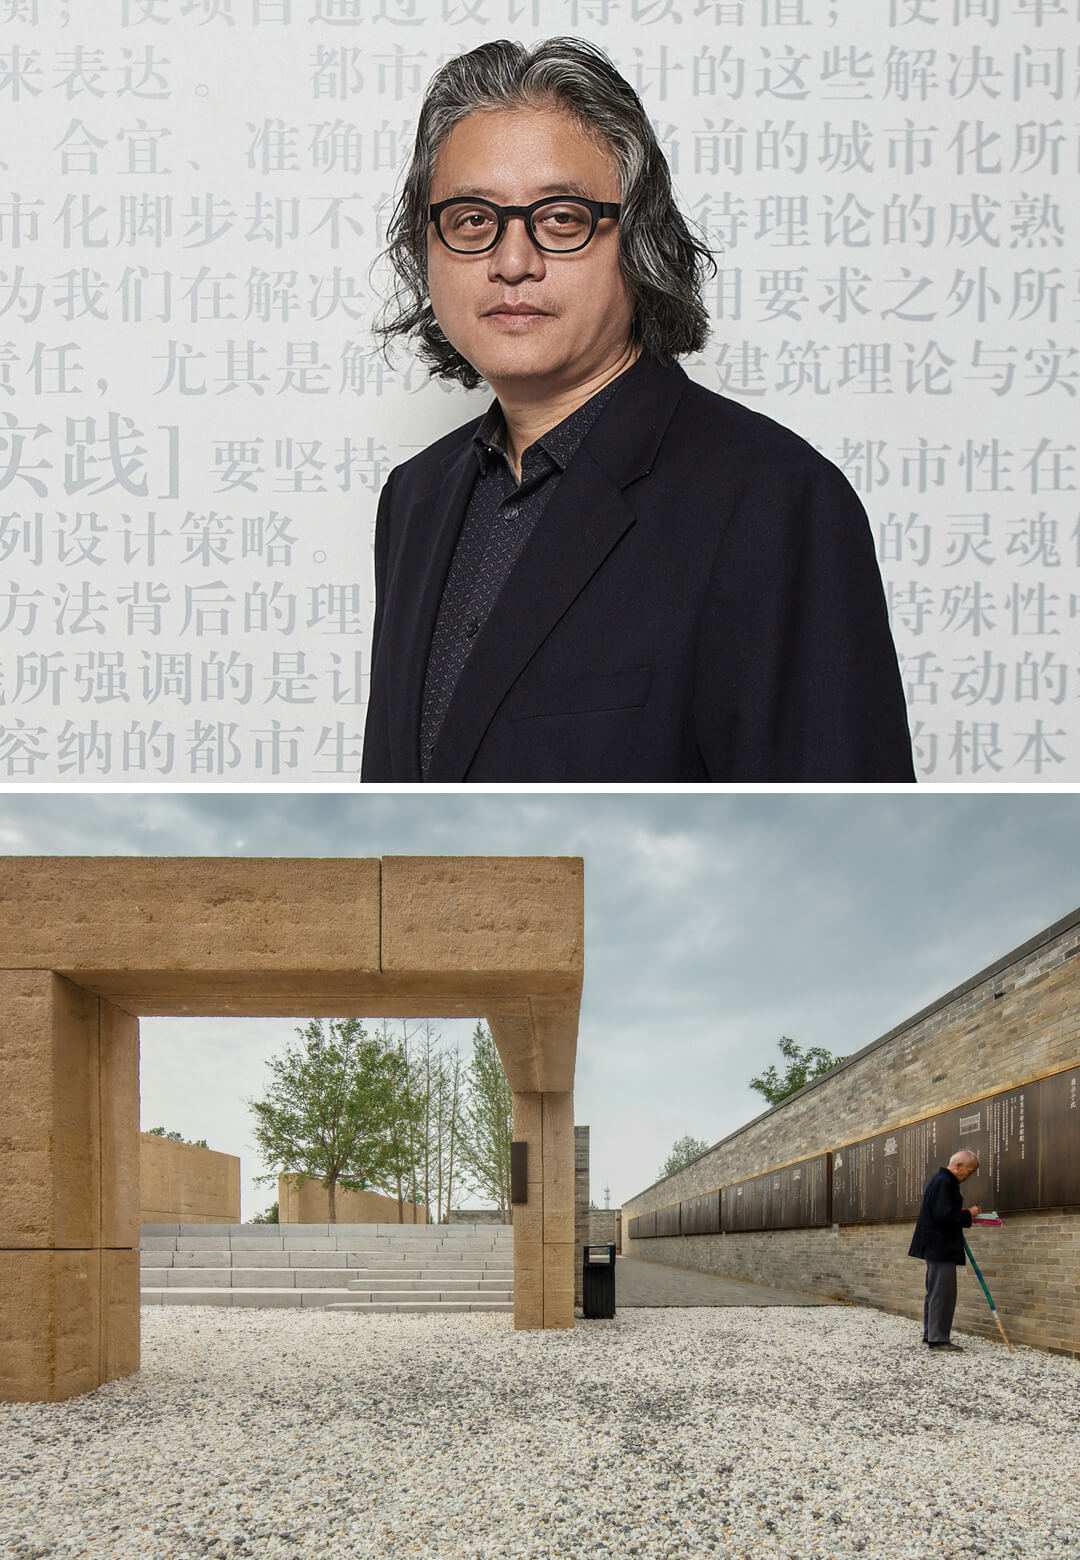 Left: Wang Hui, Right: Court of Meditation & Gallery of Precinct Ancient Buildings, The Environmental Upgrade of the Five Dragons Temple (2016) | Wang Hui | STIRworld